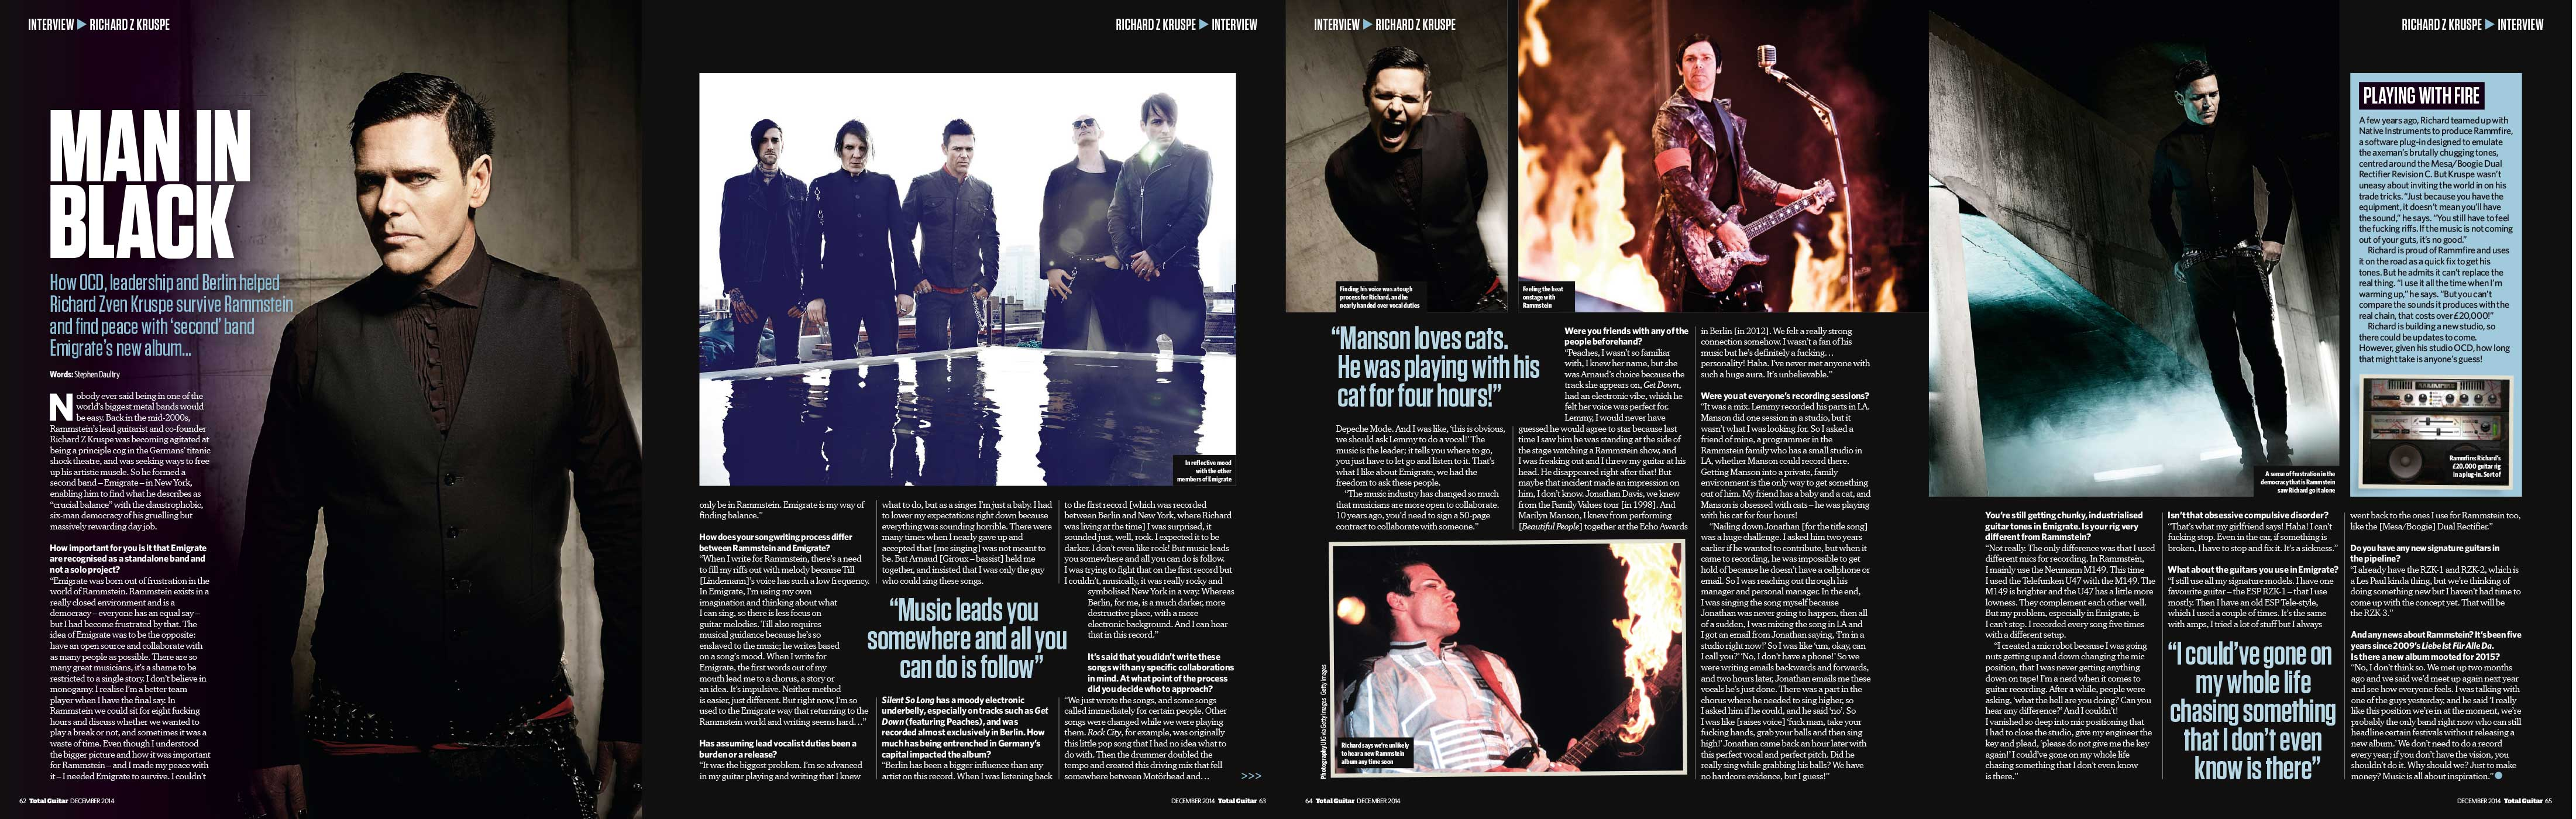 Rammstein's Richard Z Kruspe — Total Guitar 2014